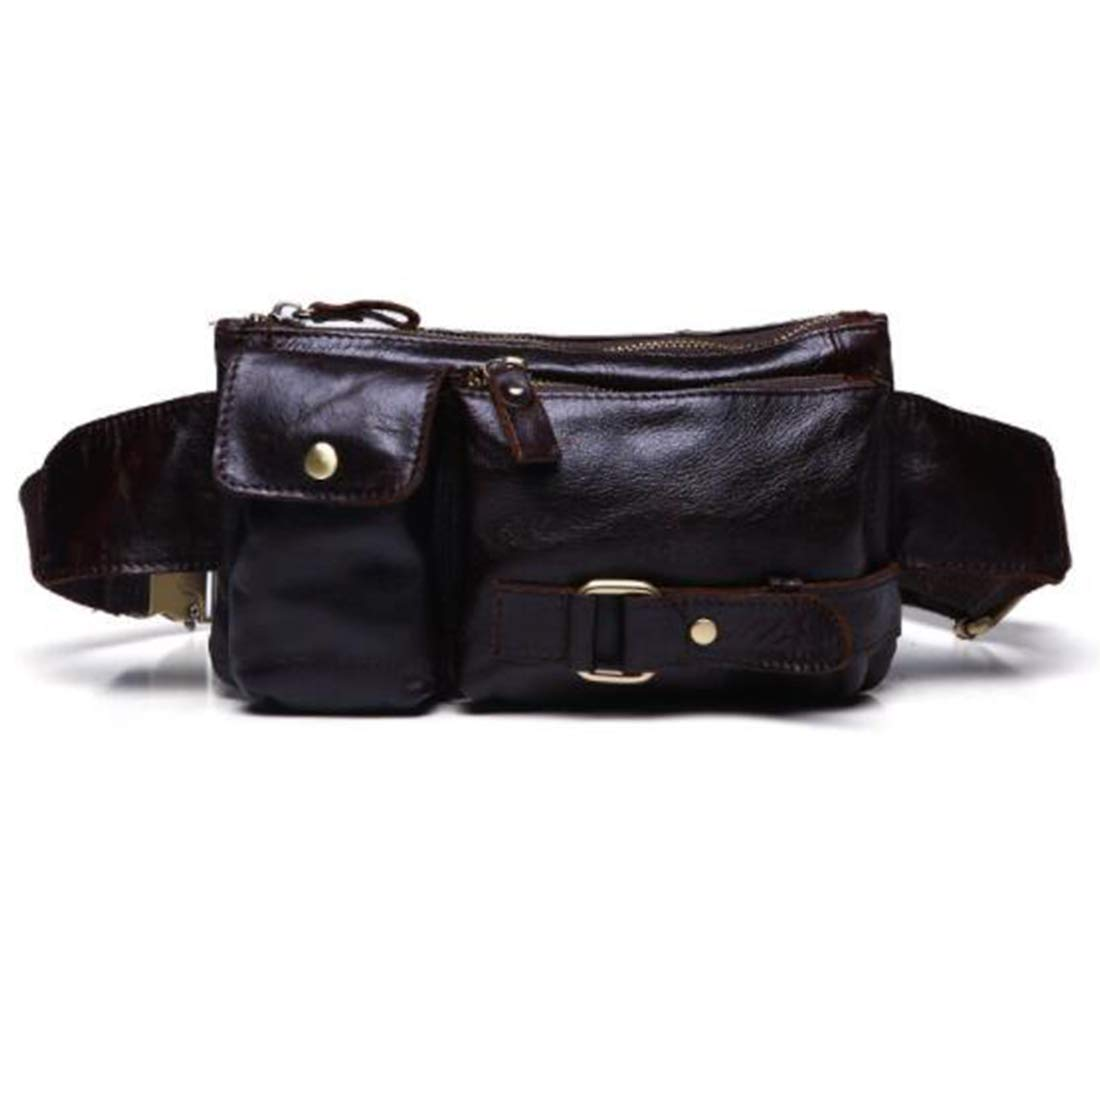 Adams chad West Bag West Pouch Body Bag Out Genuine Leather for Exercise for Men Color : Gray